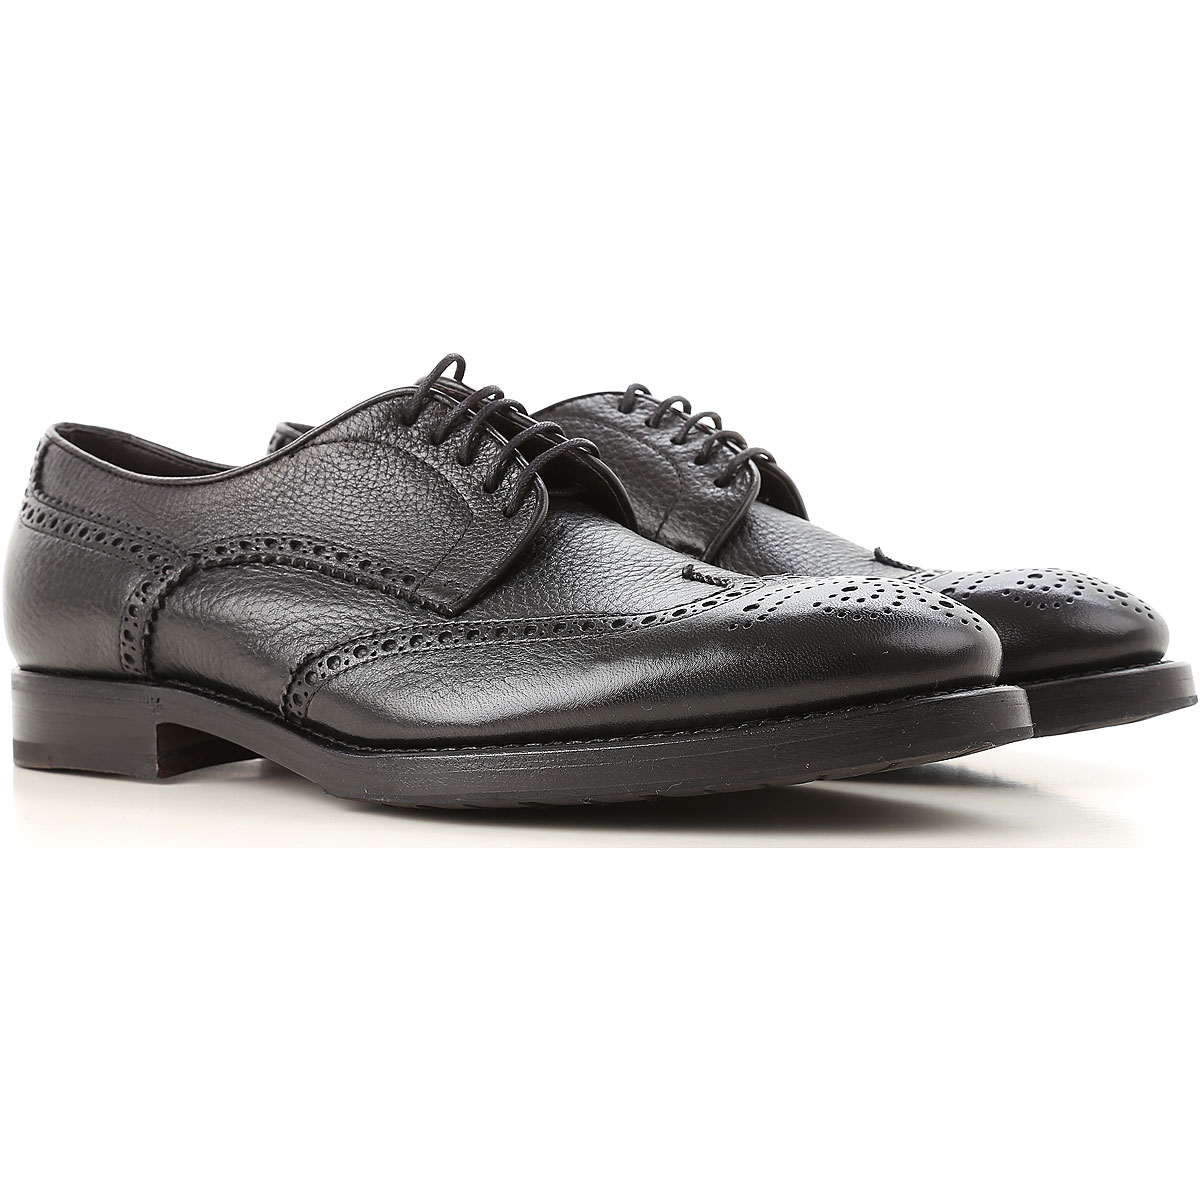 Image of Henderson Lace Up Shoes for Men Oxfords, Derbies and Brogues, Black, Leather, 2017, 7 7.5 8 8.5 9